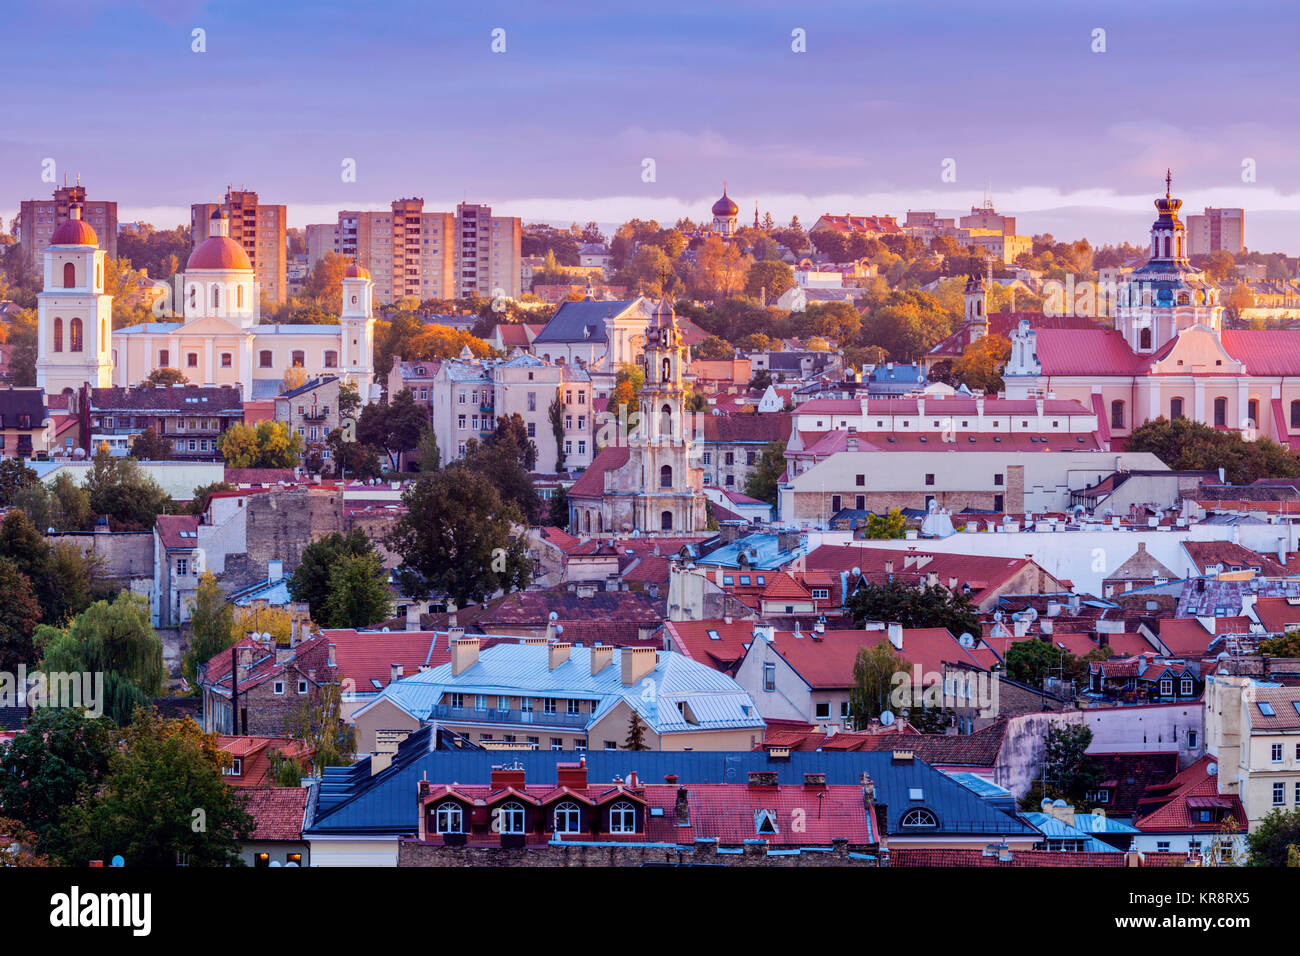 dd28b40d75 Vilnius, Lithuania, Cityscape at sunrise Stock Photo: 169224781 - Alamy